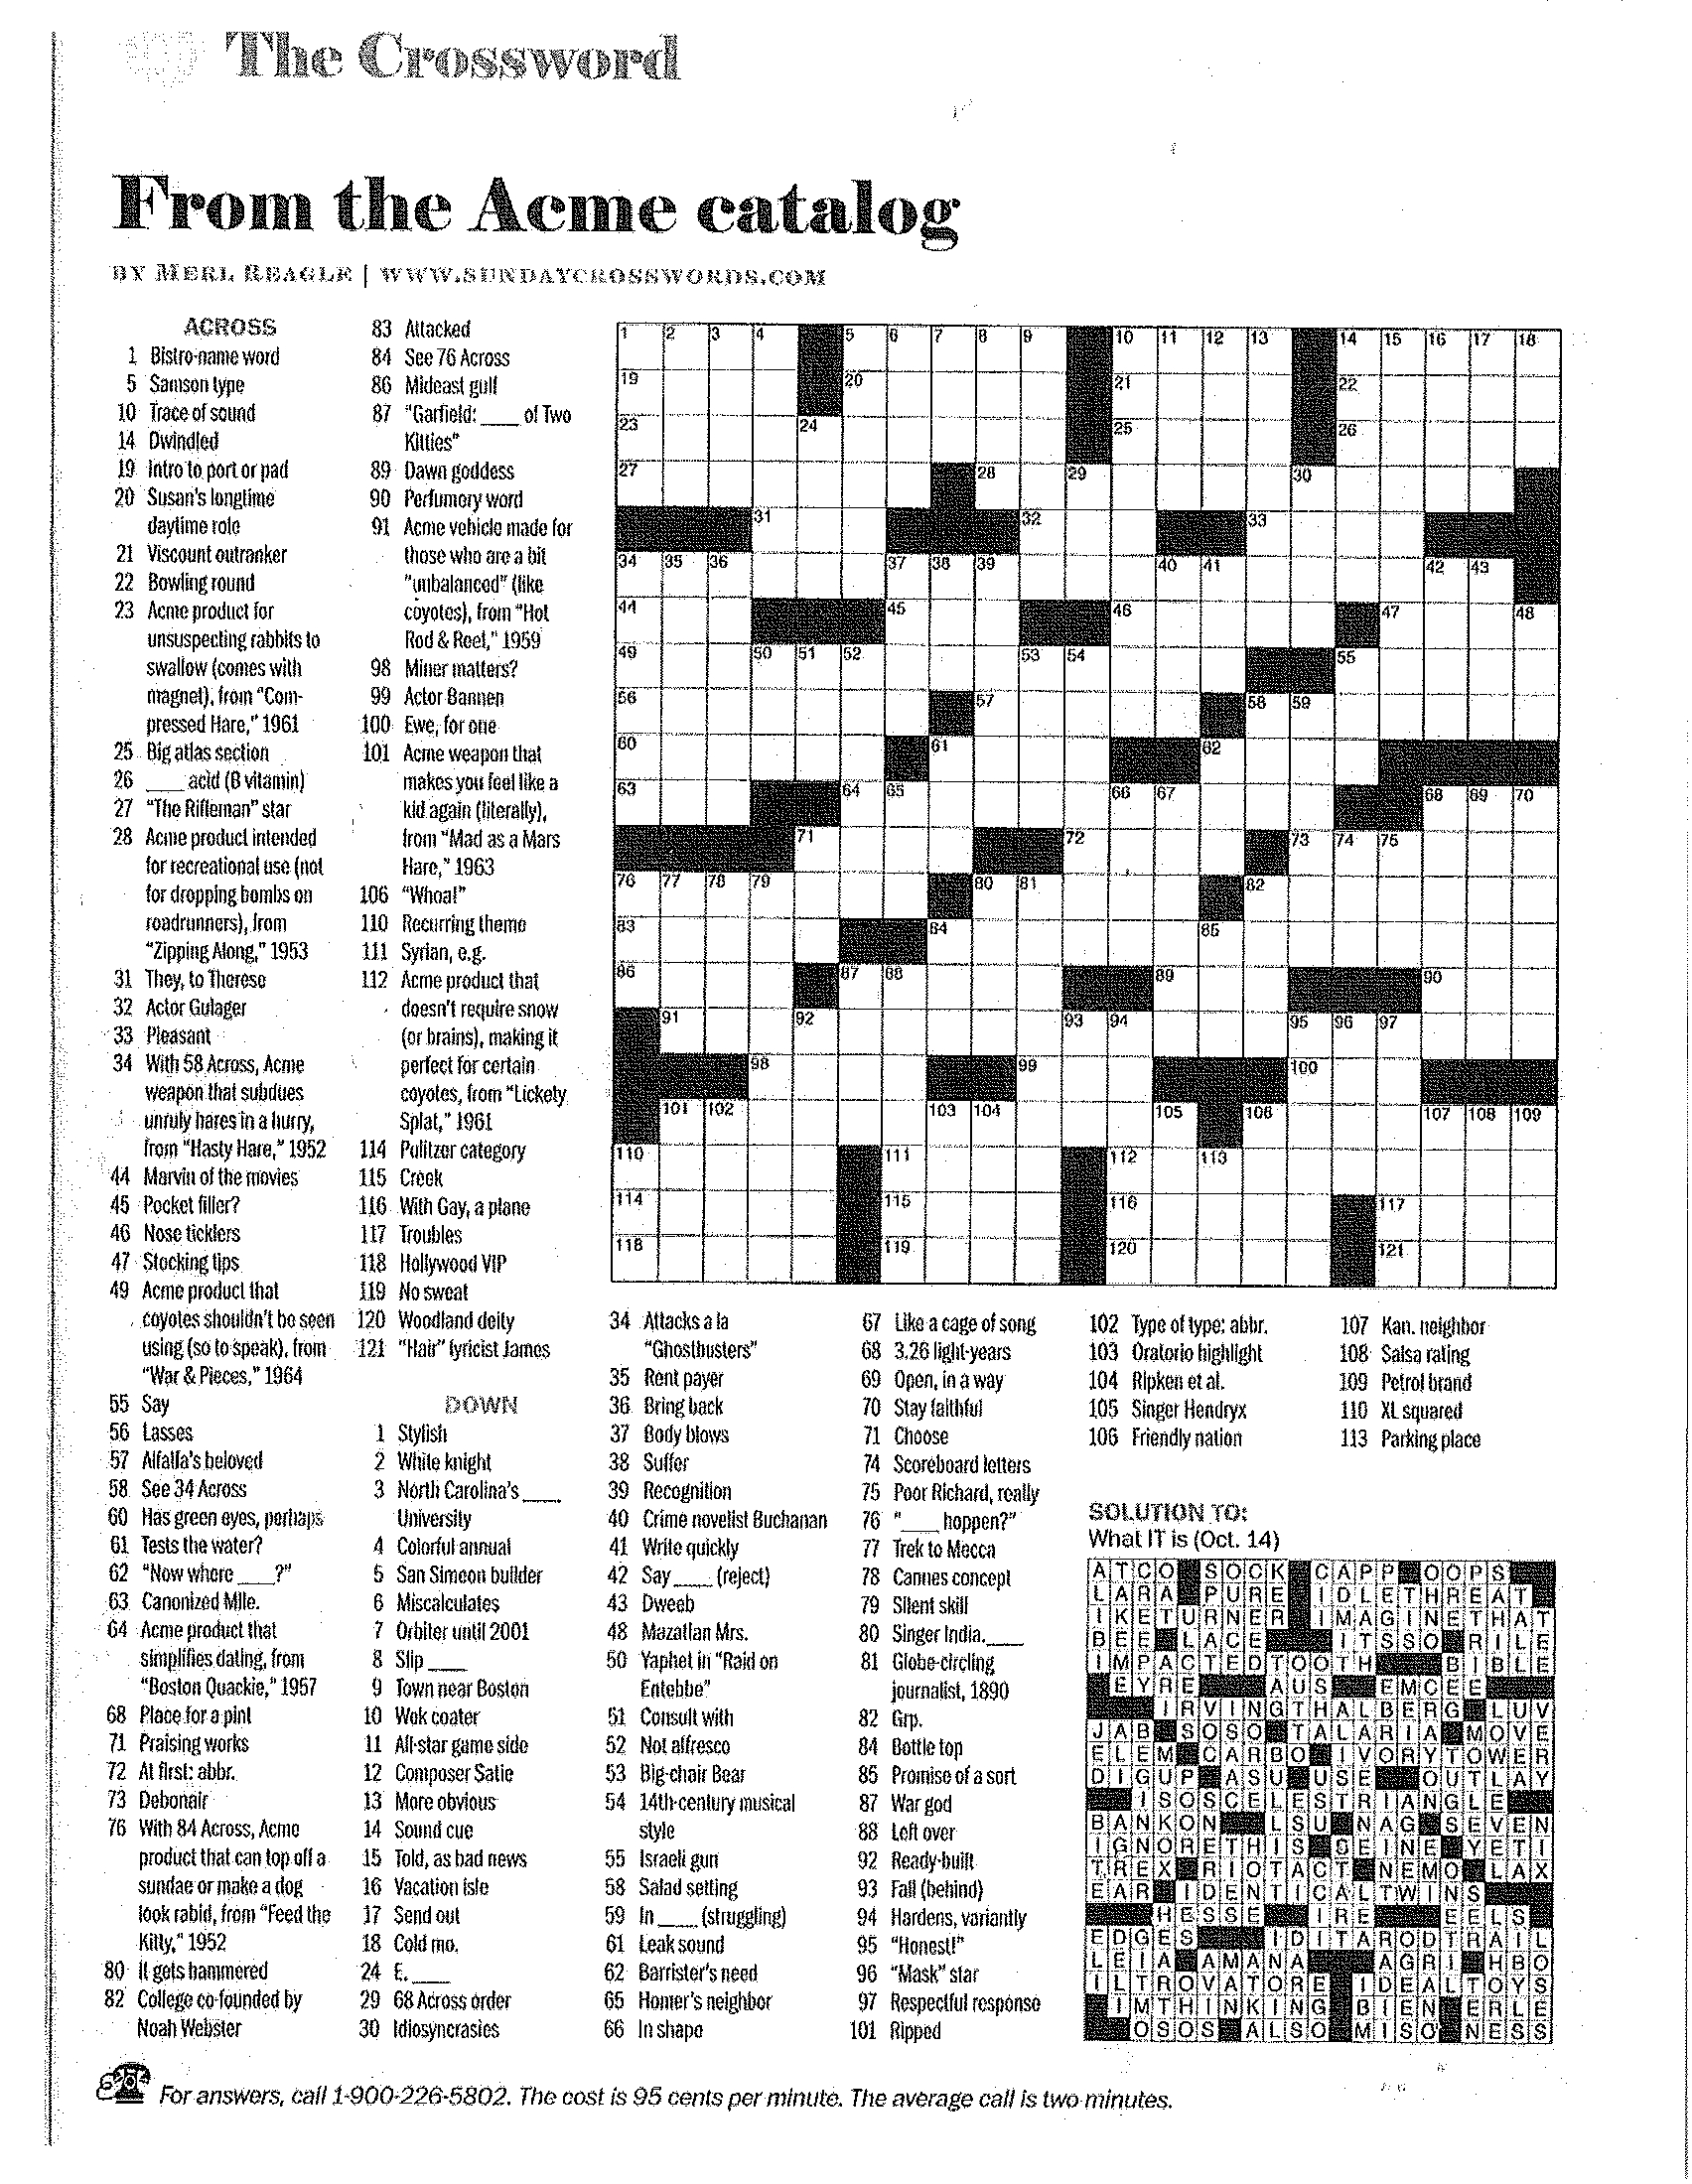 Printable Crossword Puzzles Merl Reagle | Download Them Or Print - Merl Reagle's Sunday Crossword Free Printable